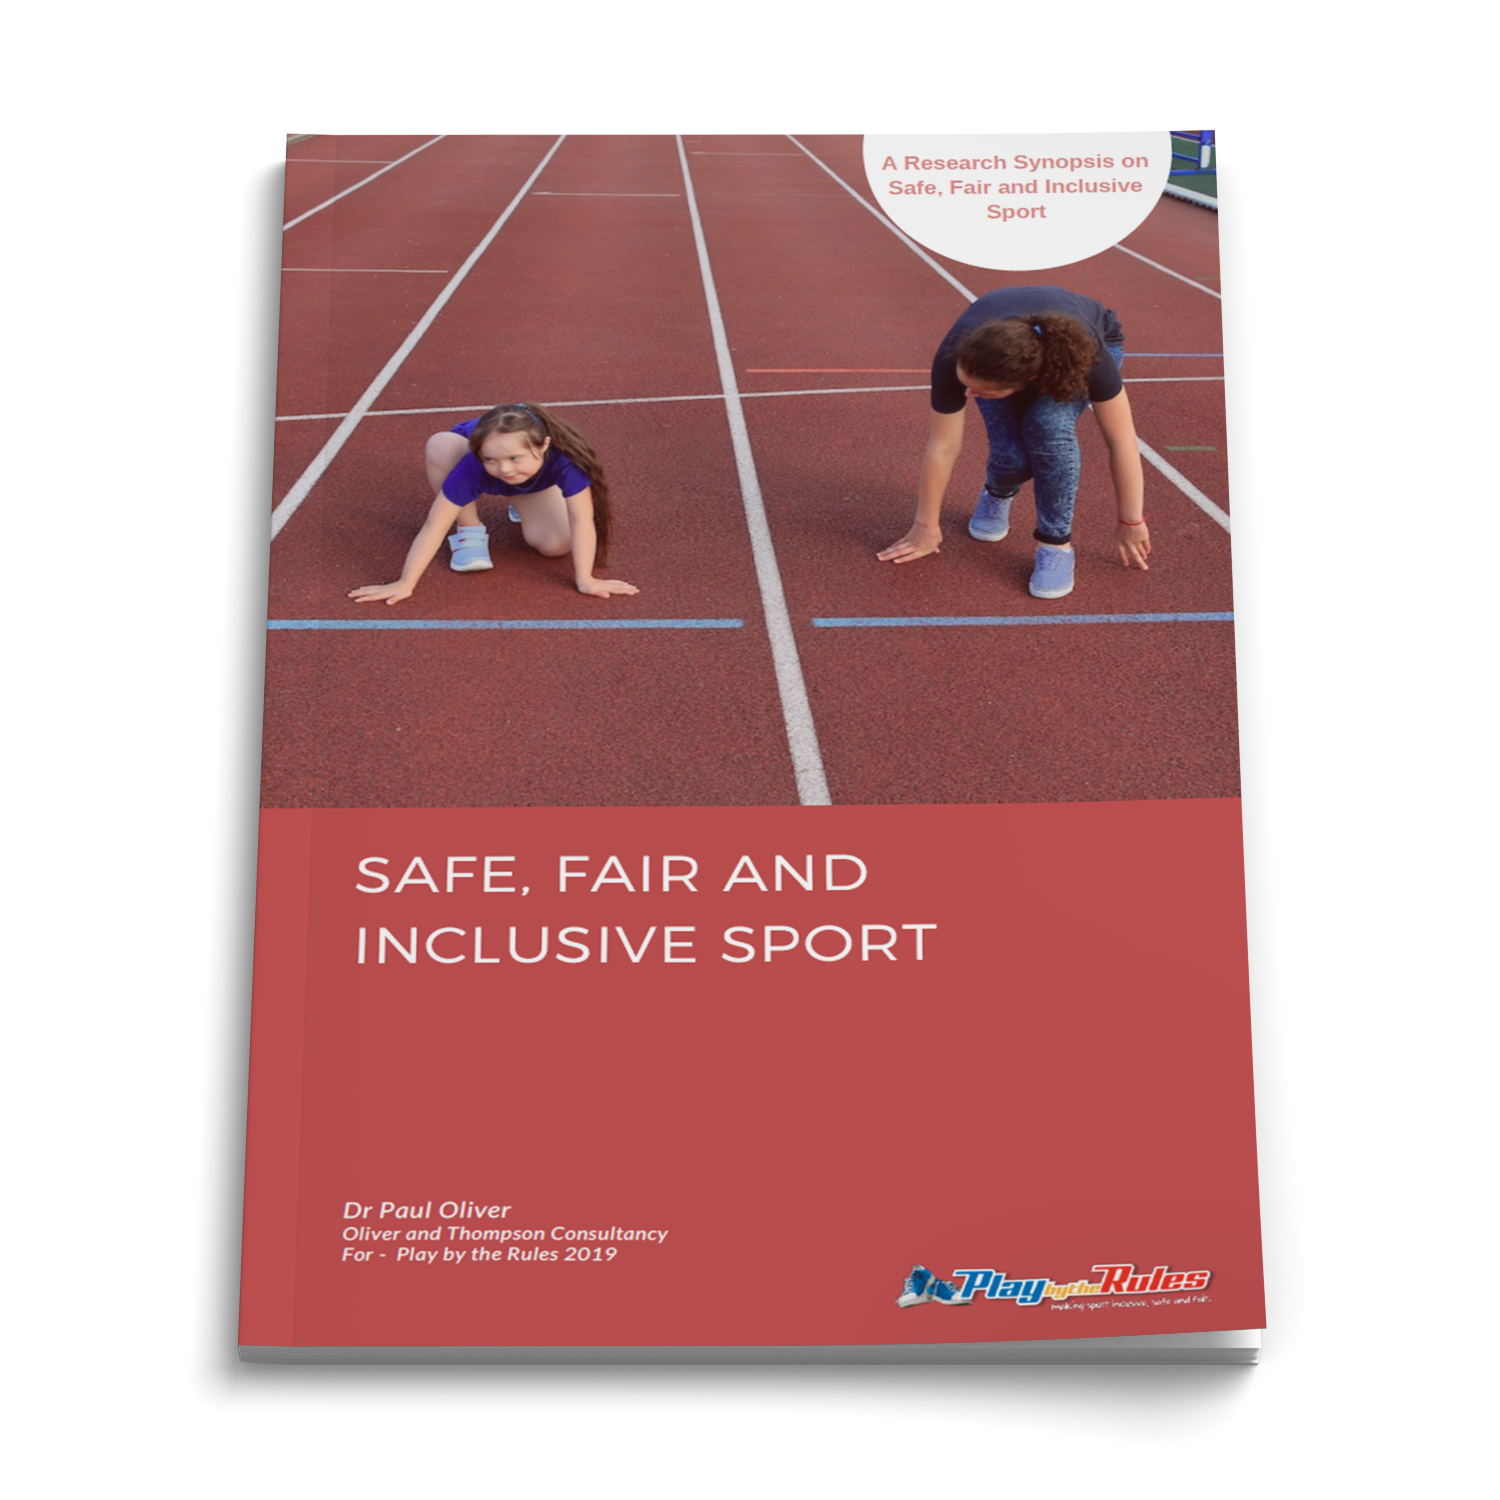 Safe, fair and inclusive sport a research synopsis